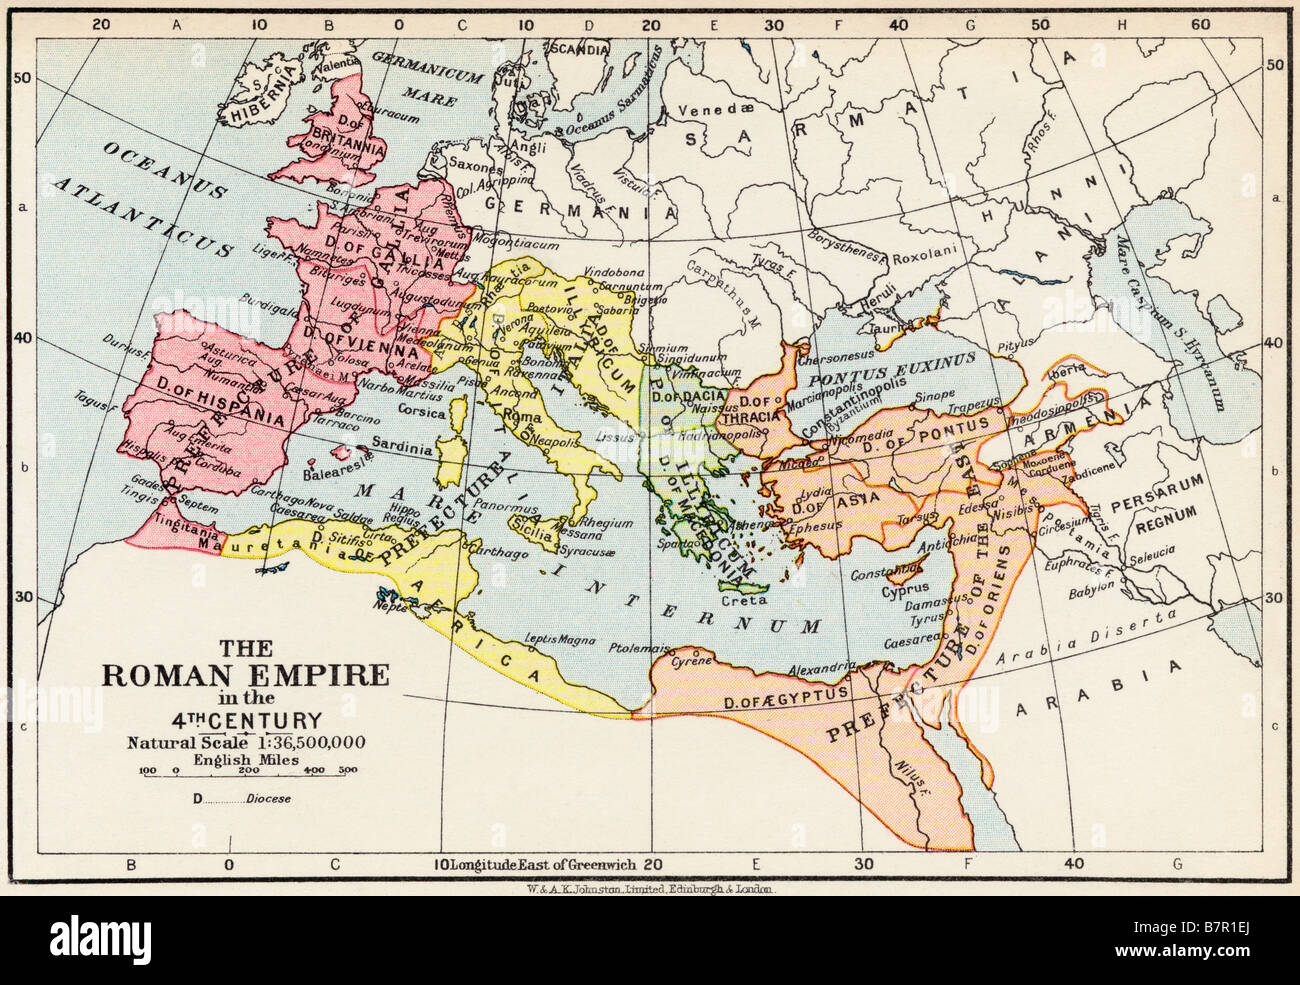 Map Of The Roman Empire In The Th Century Stock Photo Royalty - Rome empire map